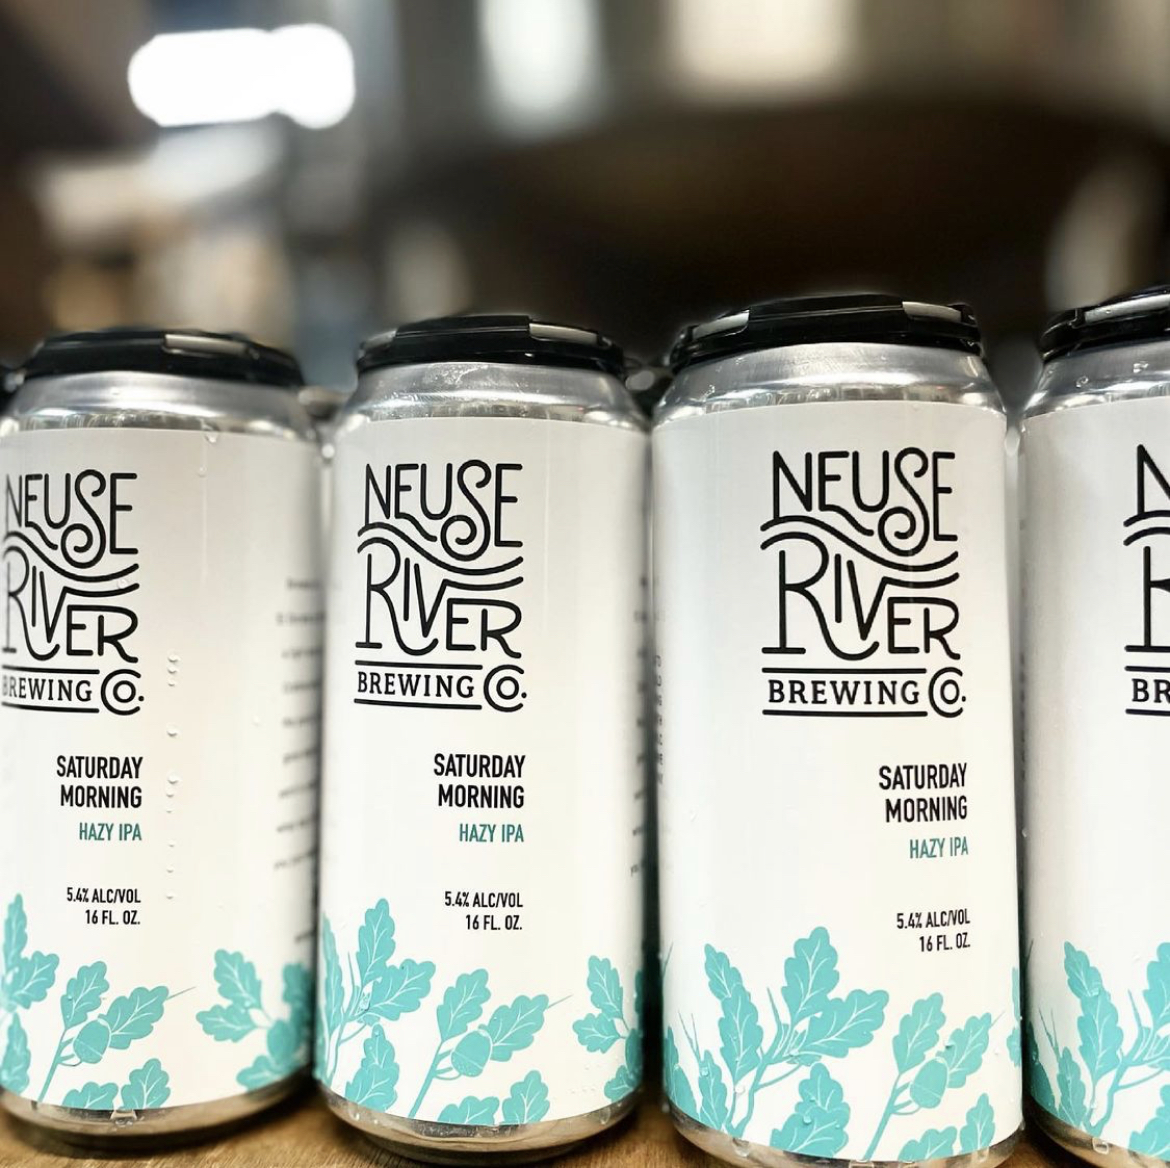 Beer Cans at Neuse River Brewing & Brasserie